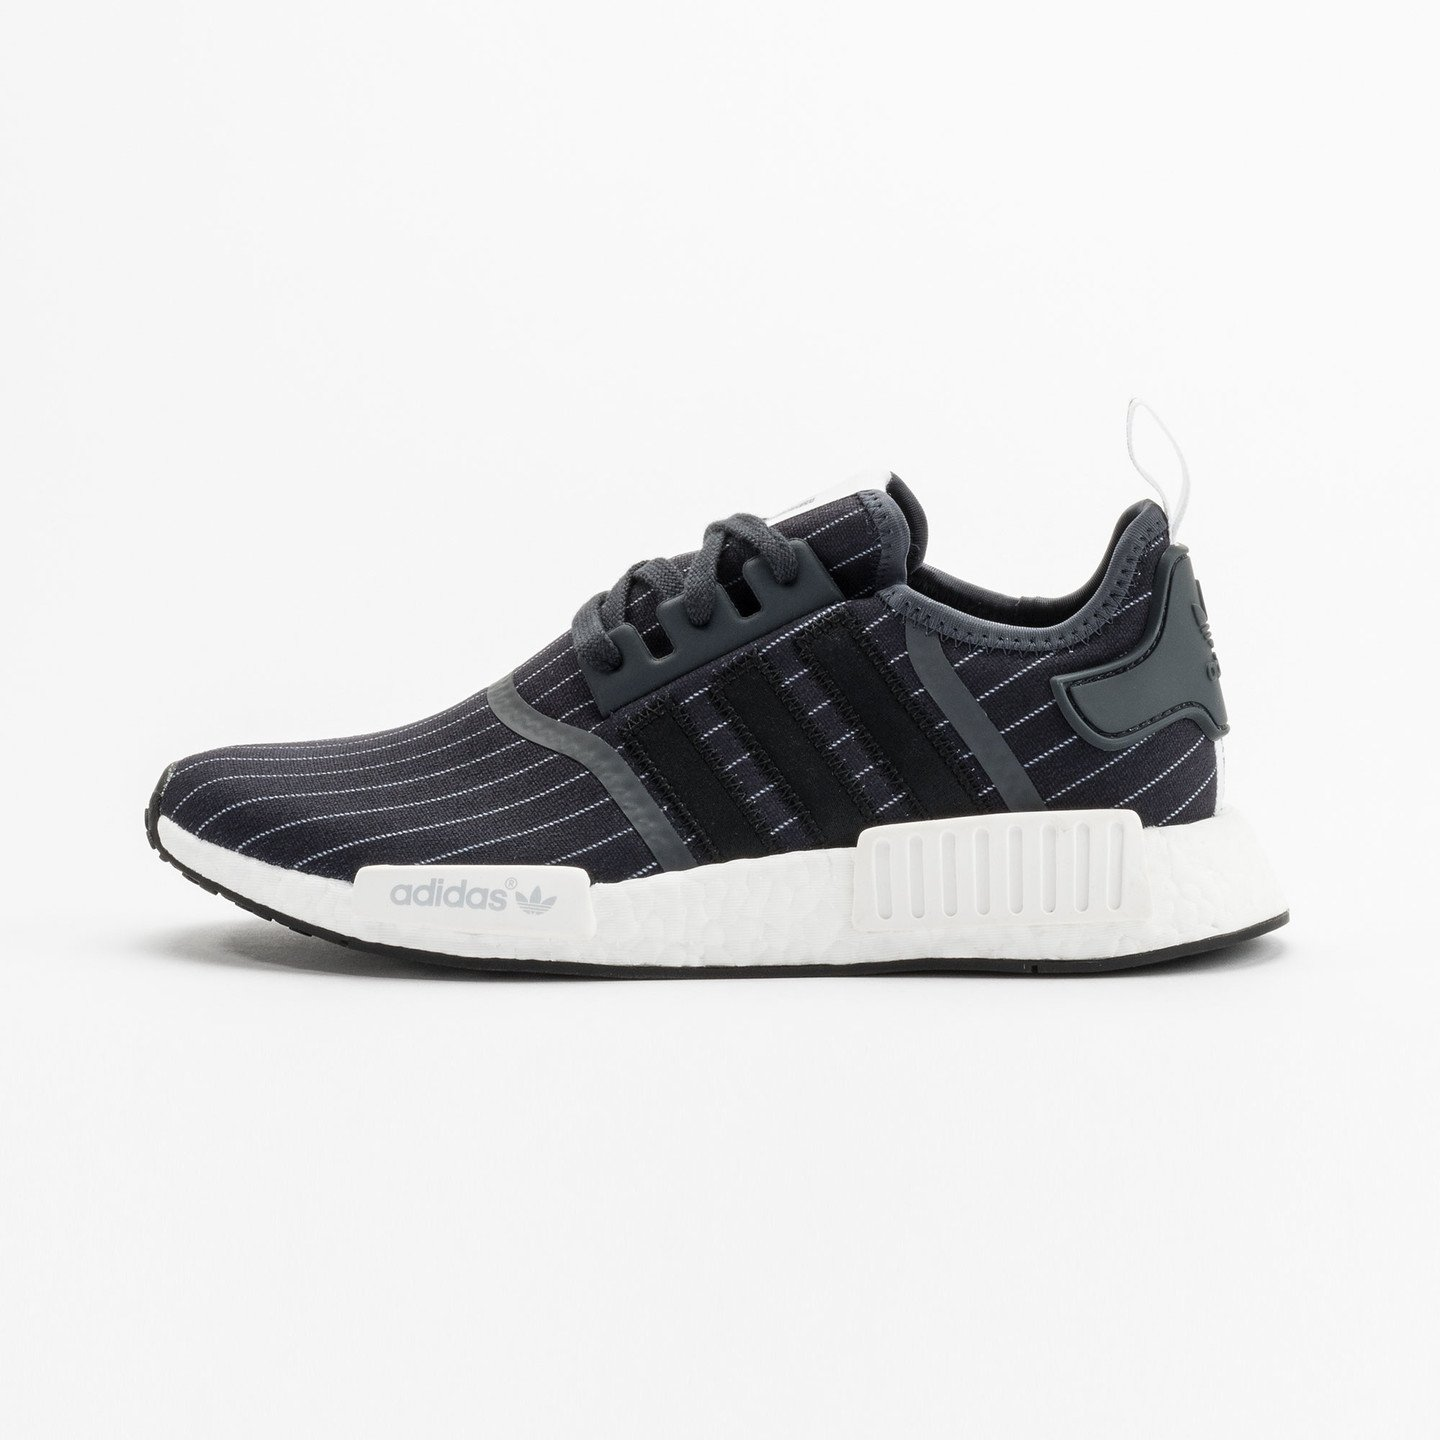 Adidas NMD x Bedwin & the Heartbreakers  Night Grey / Core Black / Ftwr White BB3124-42.66